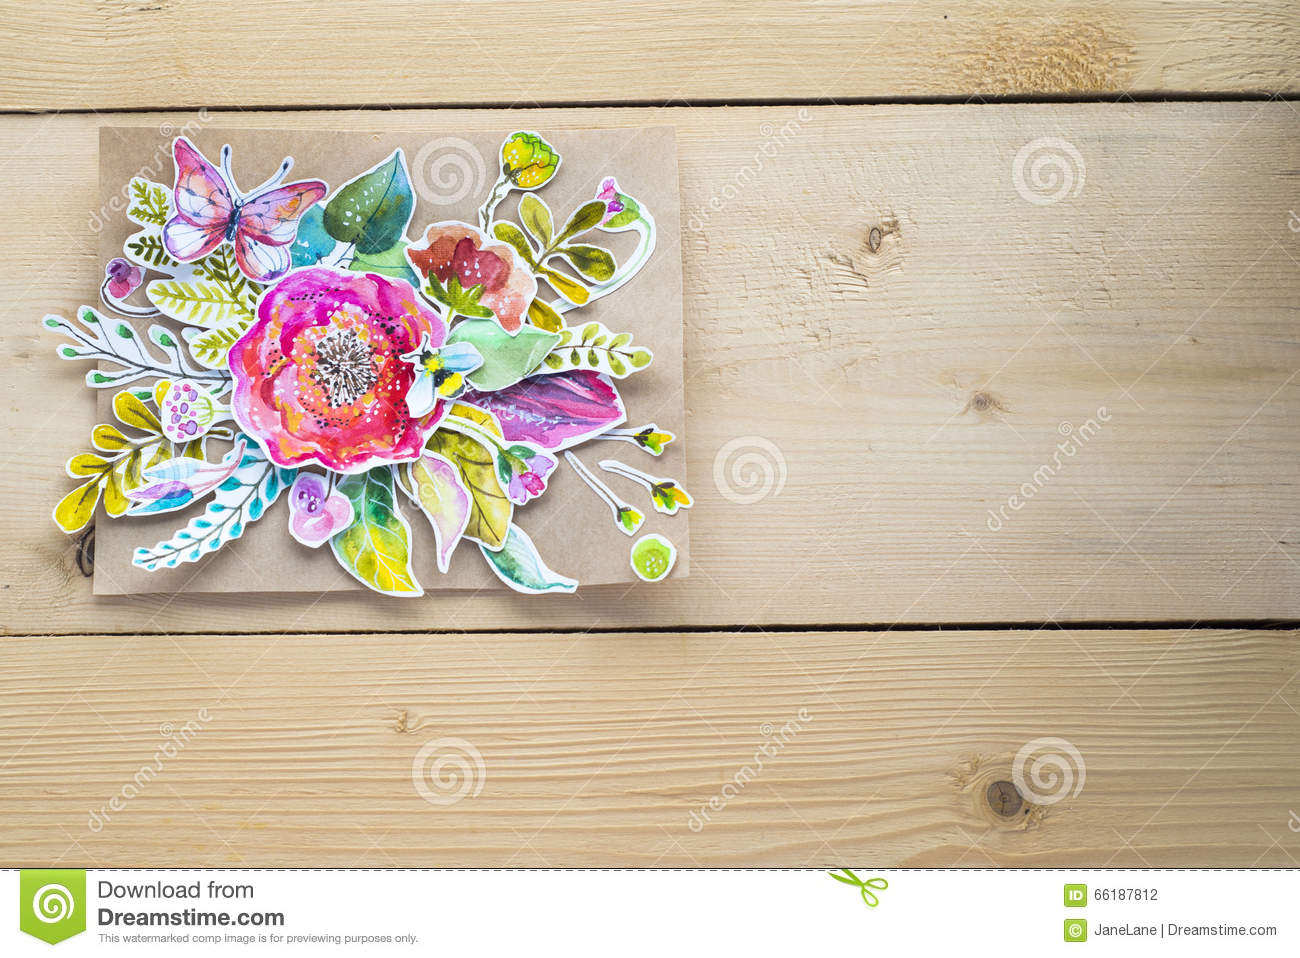 Mock Up For Presentations With Watercolor Paper Flowers Stock Photo